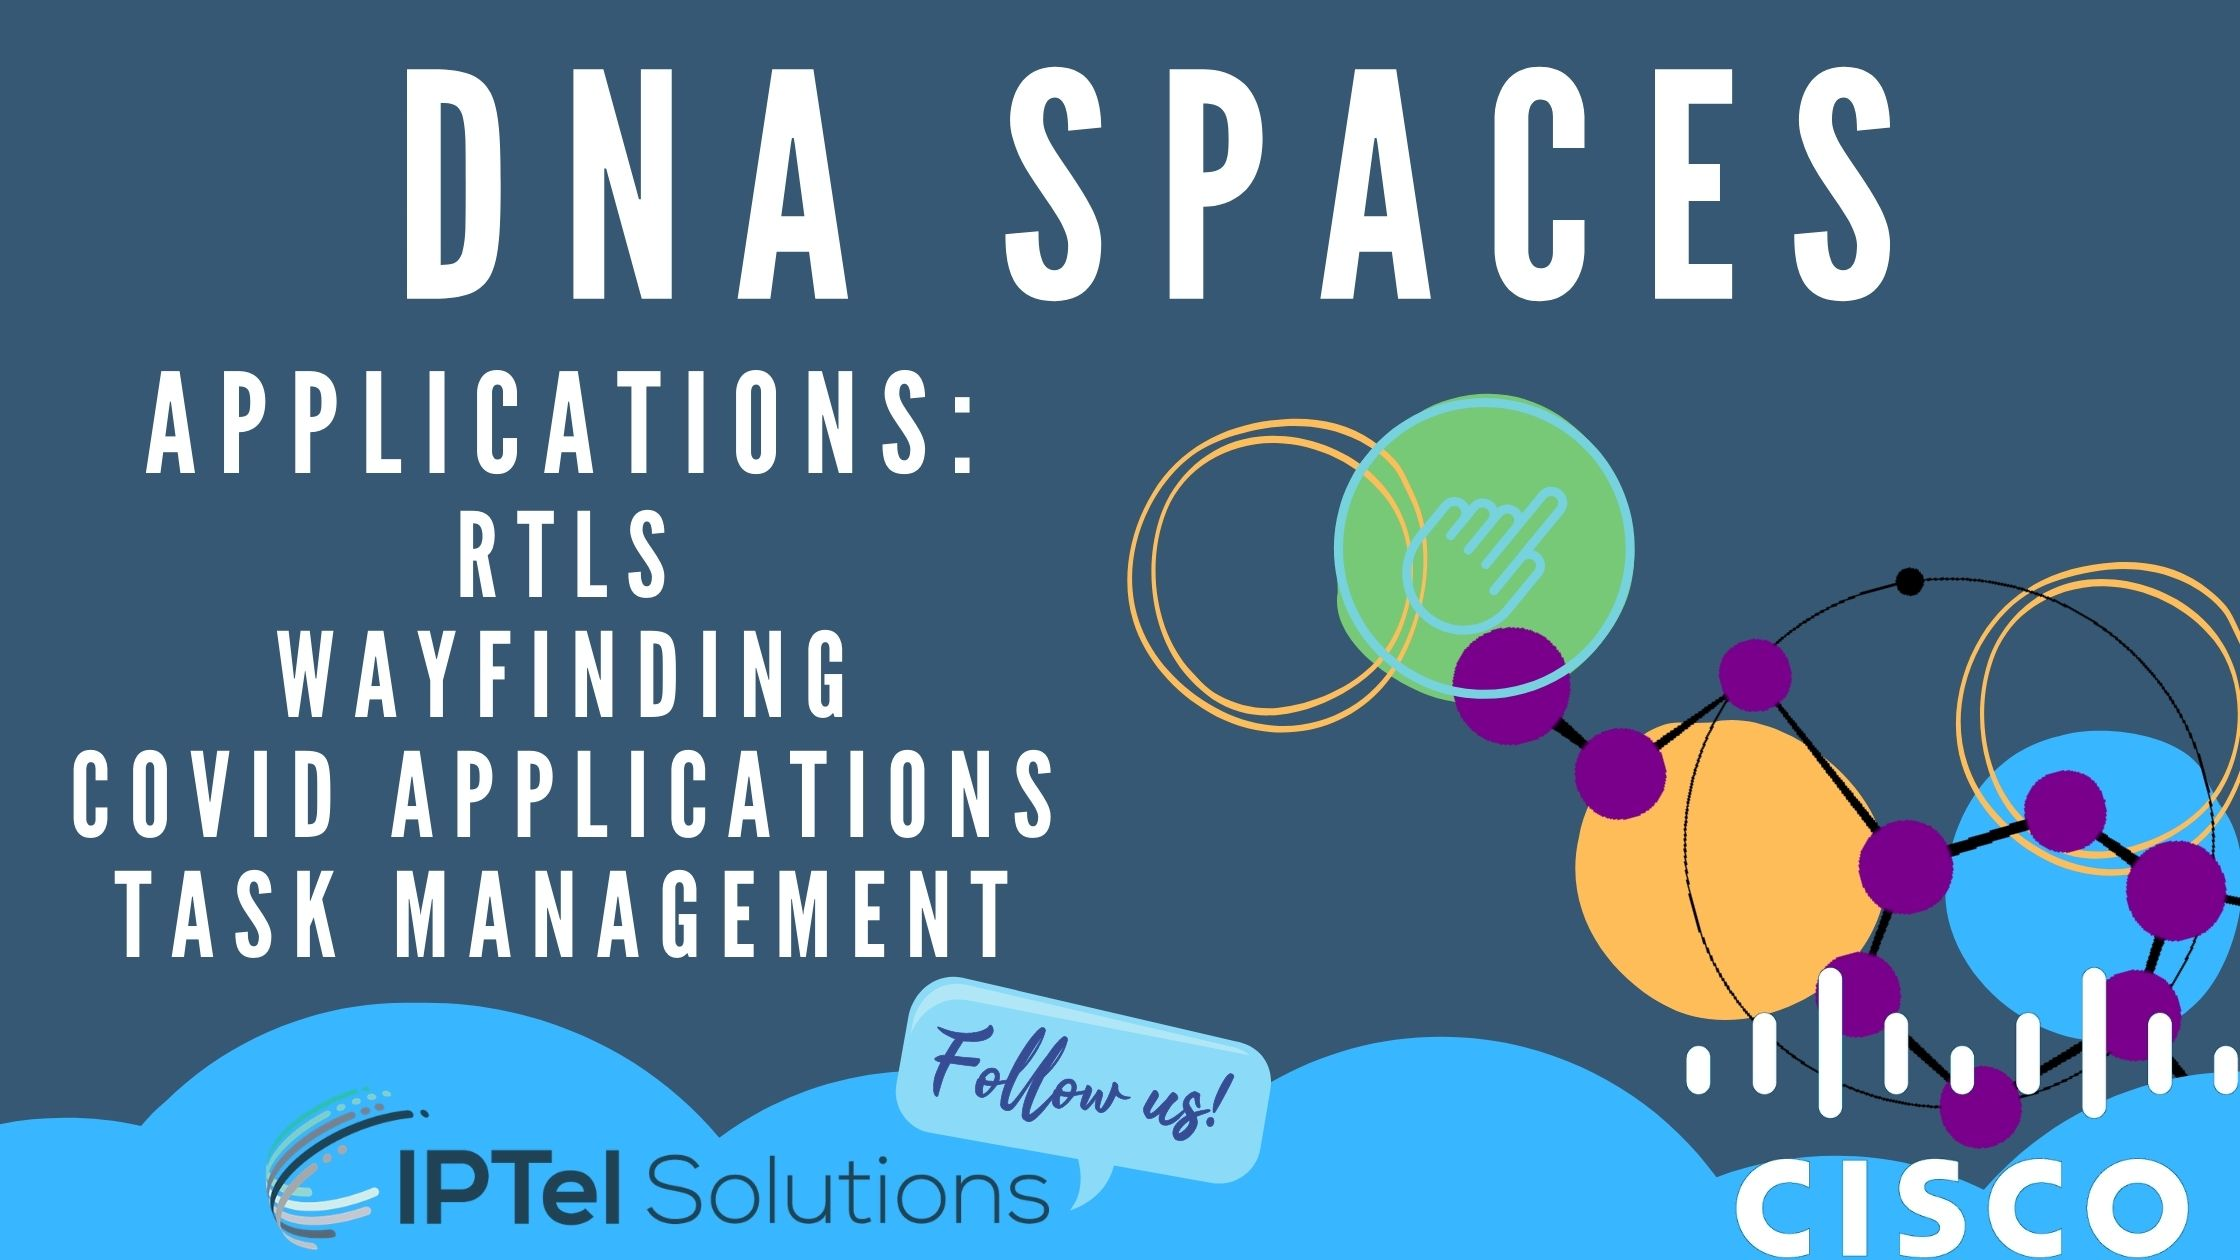 DNA Spaces Applications